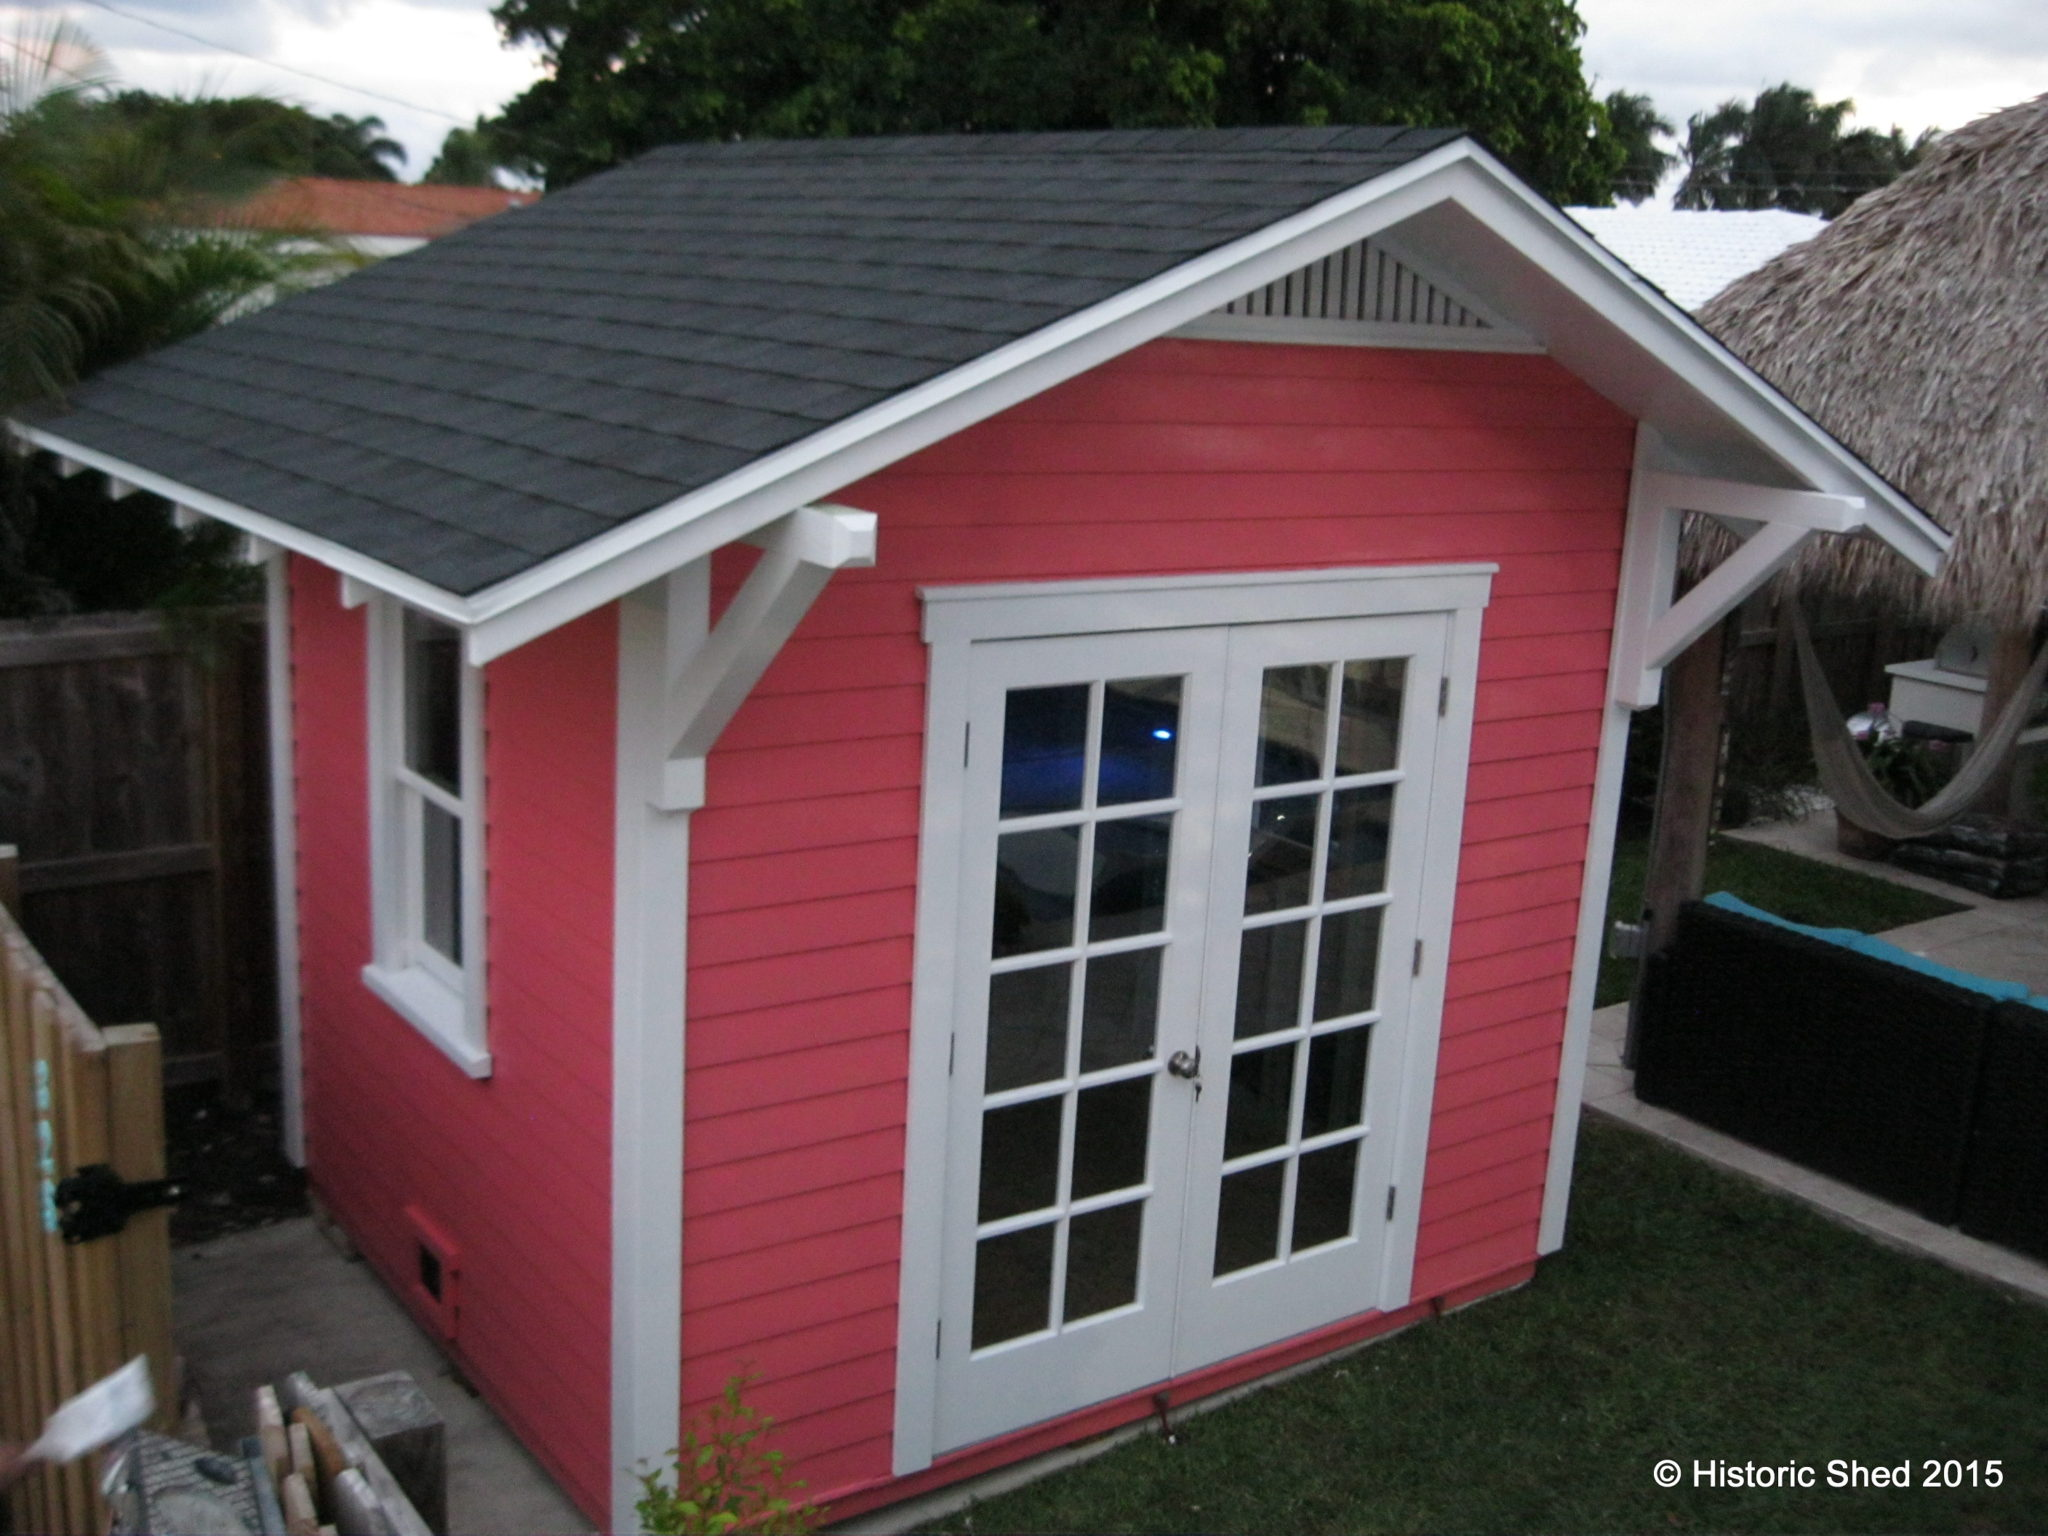 Garden Sheds South Florida interesting garden sheds south florida green house shade potting